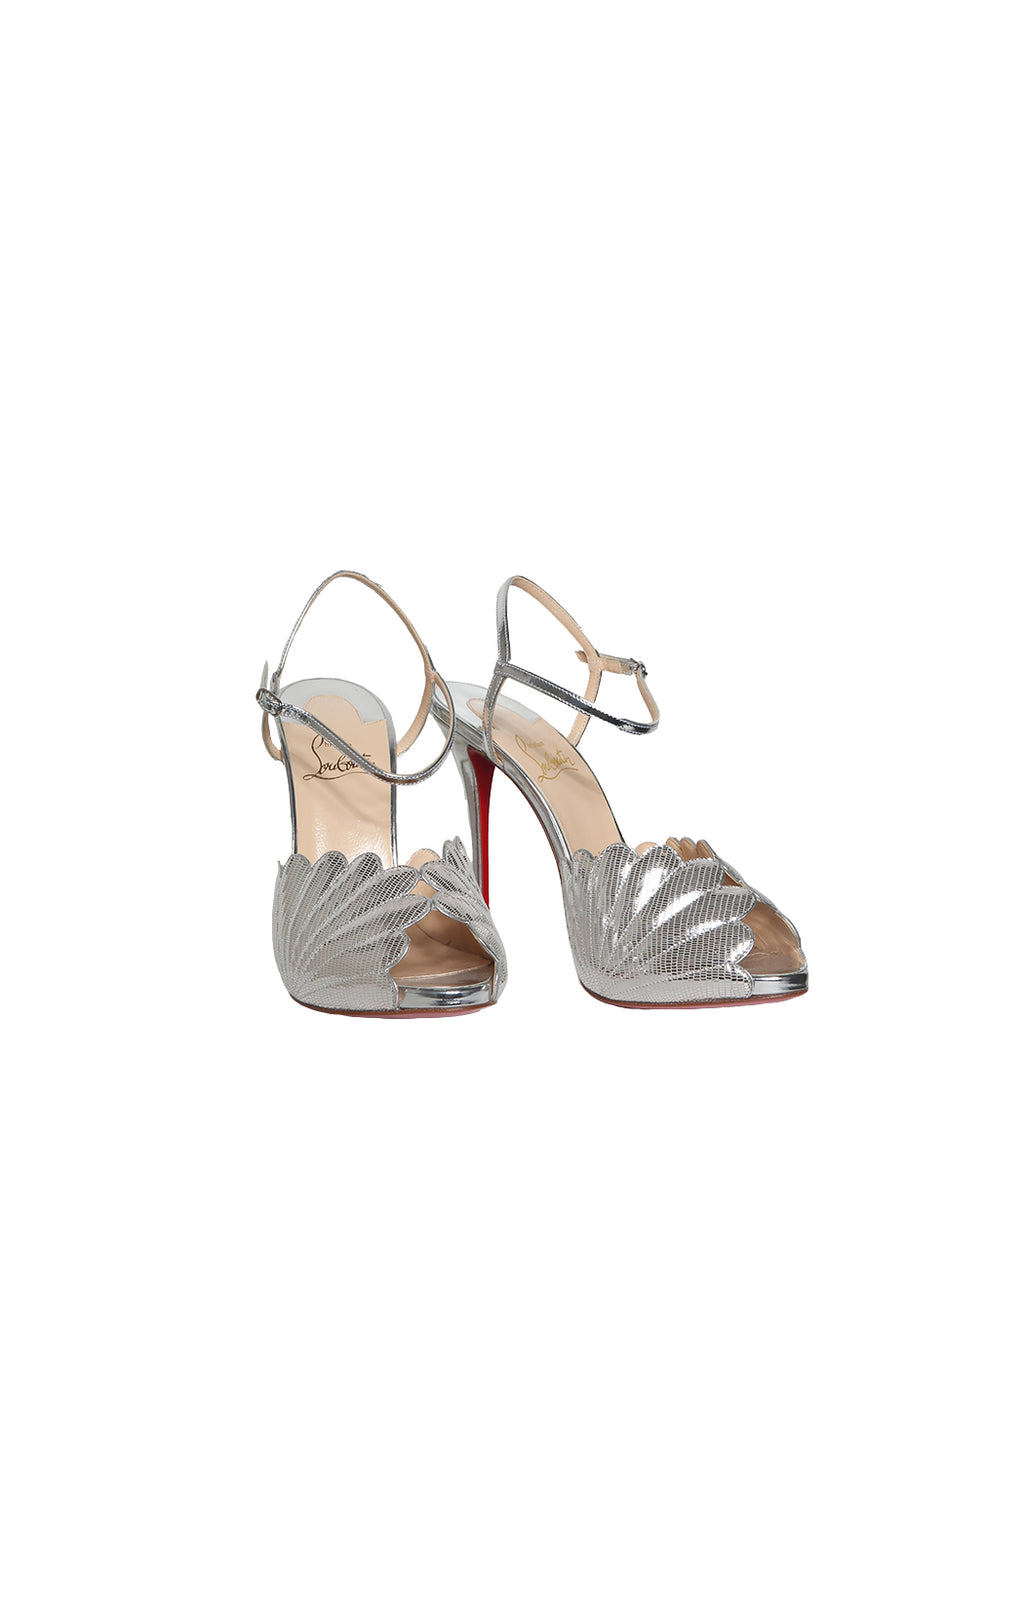 Front view of CHRISTIAN LOUBOUTIN  High Heel Sandal Size: 39 (US 9)